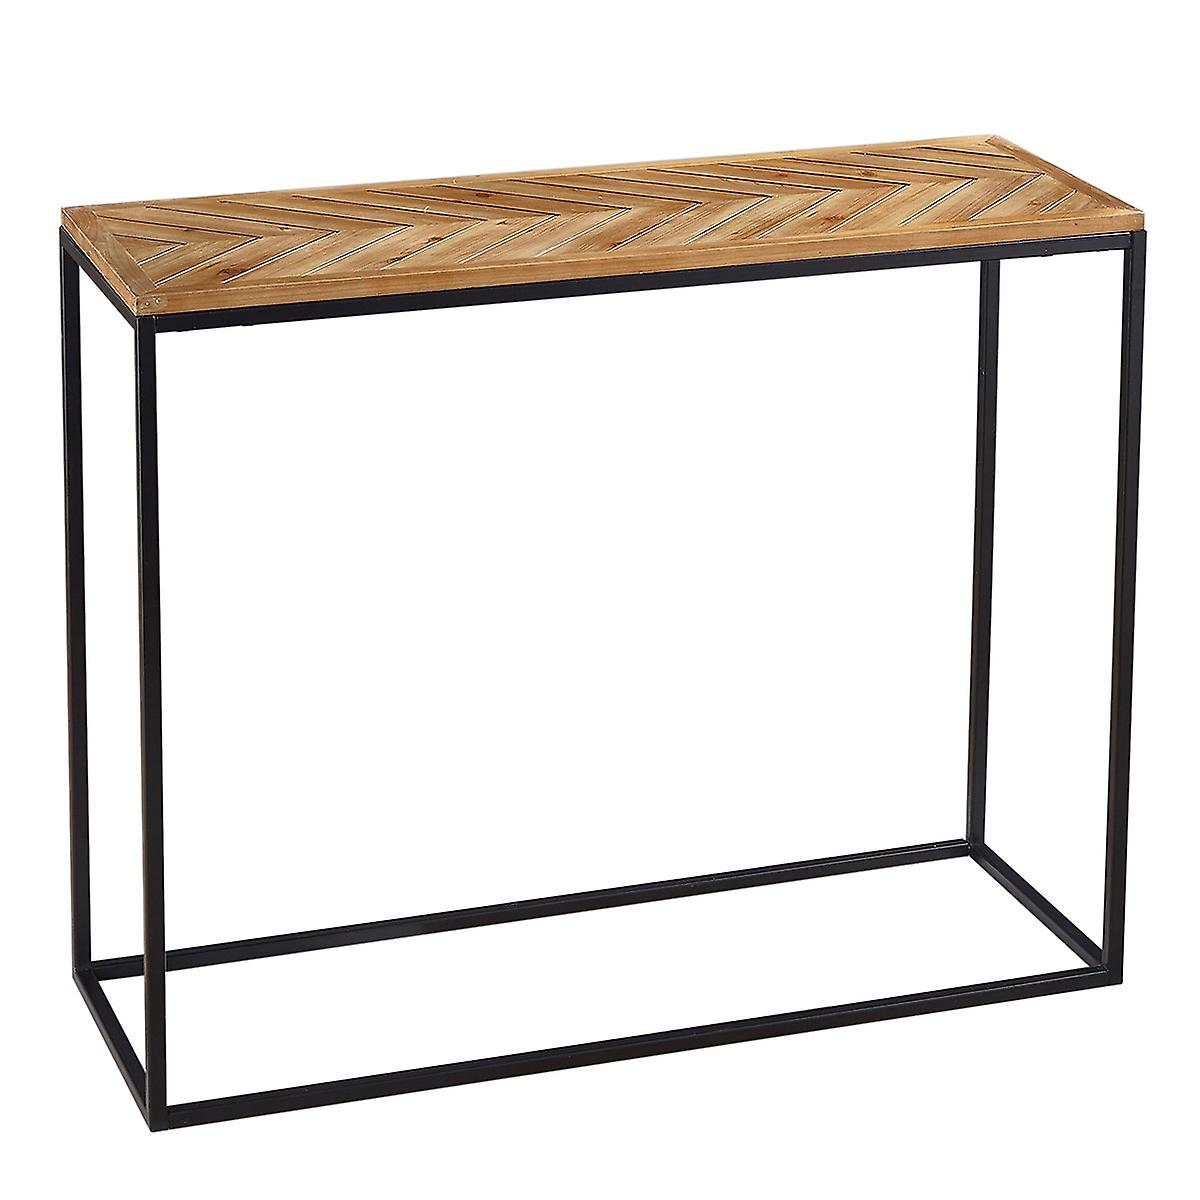 Charles Bentley Industrial Chevron Console Contemporary Wood Metal Table H81.5 x L35 x W100cm